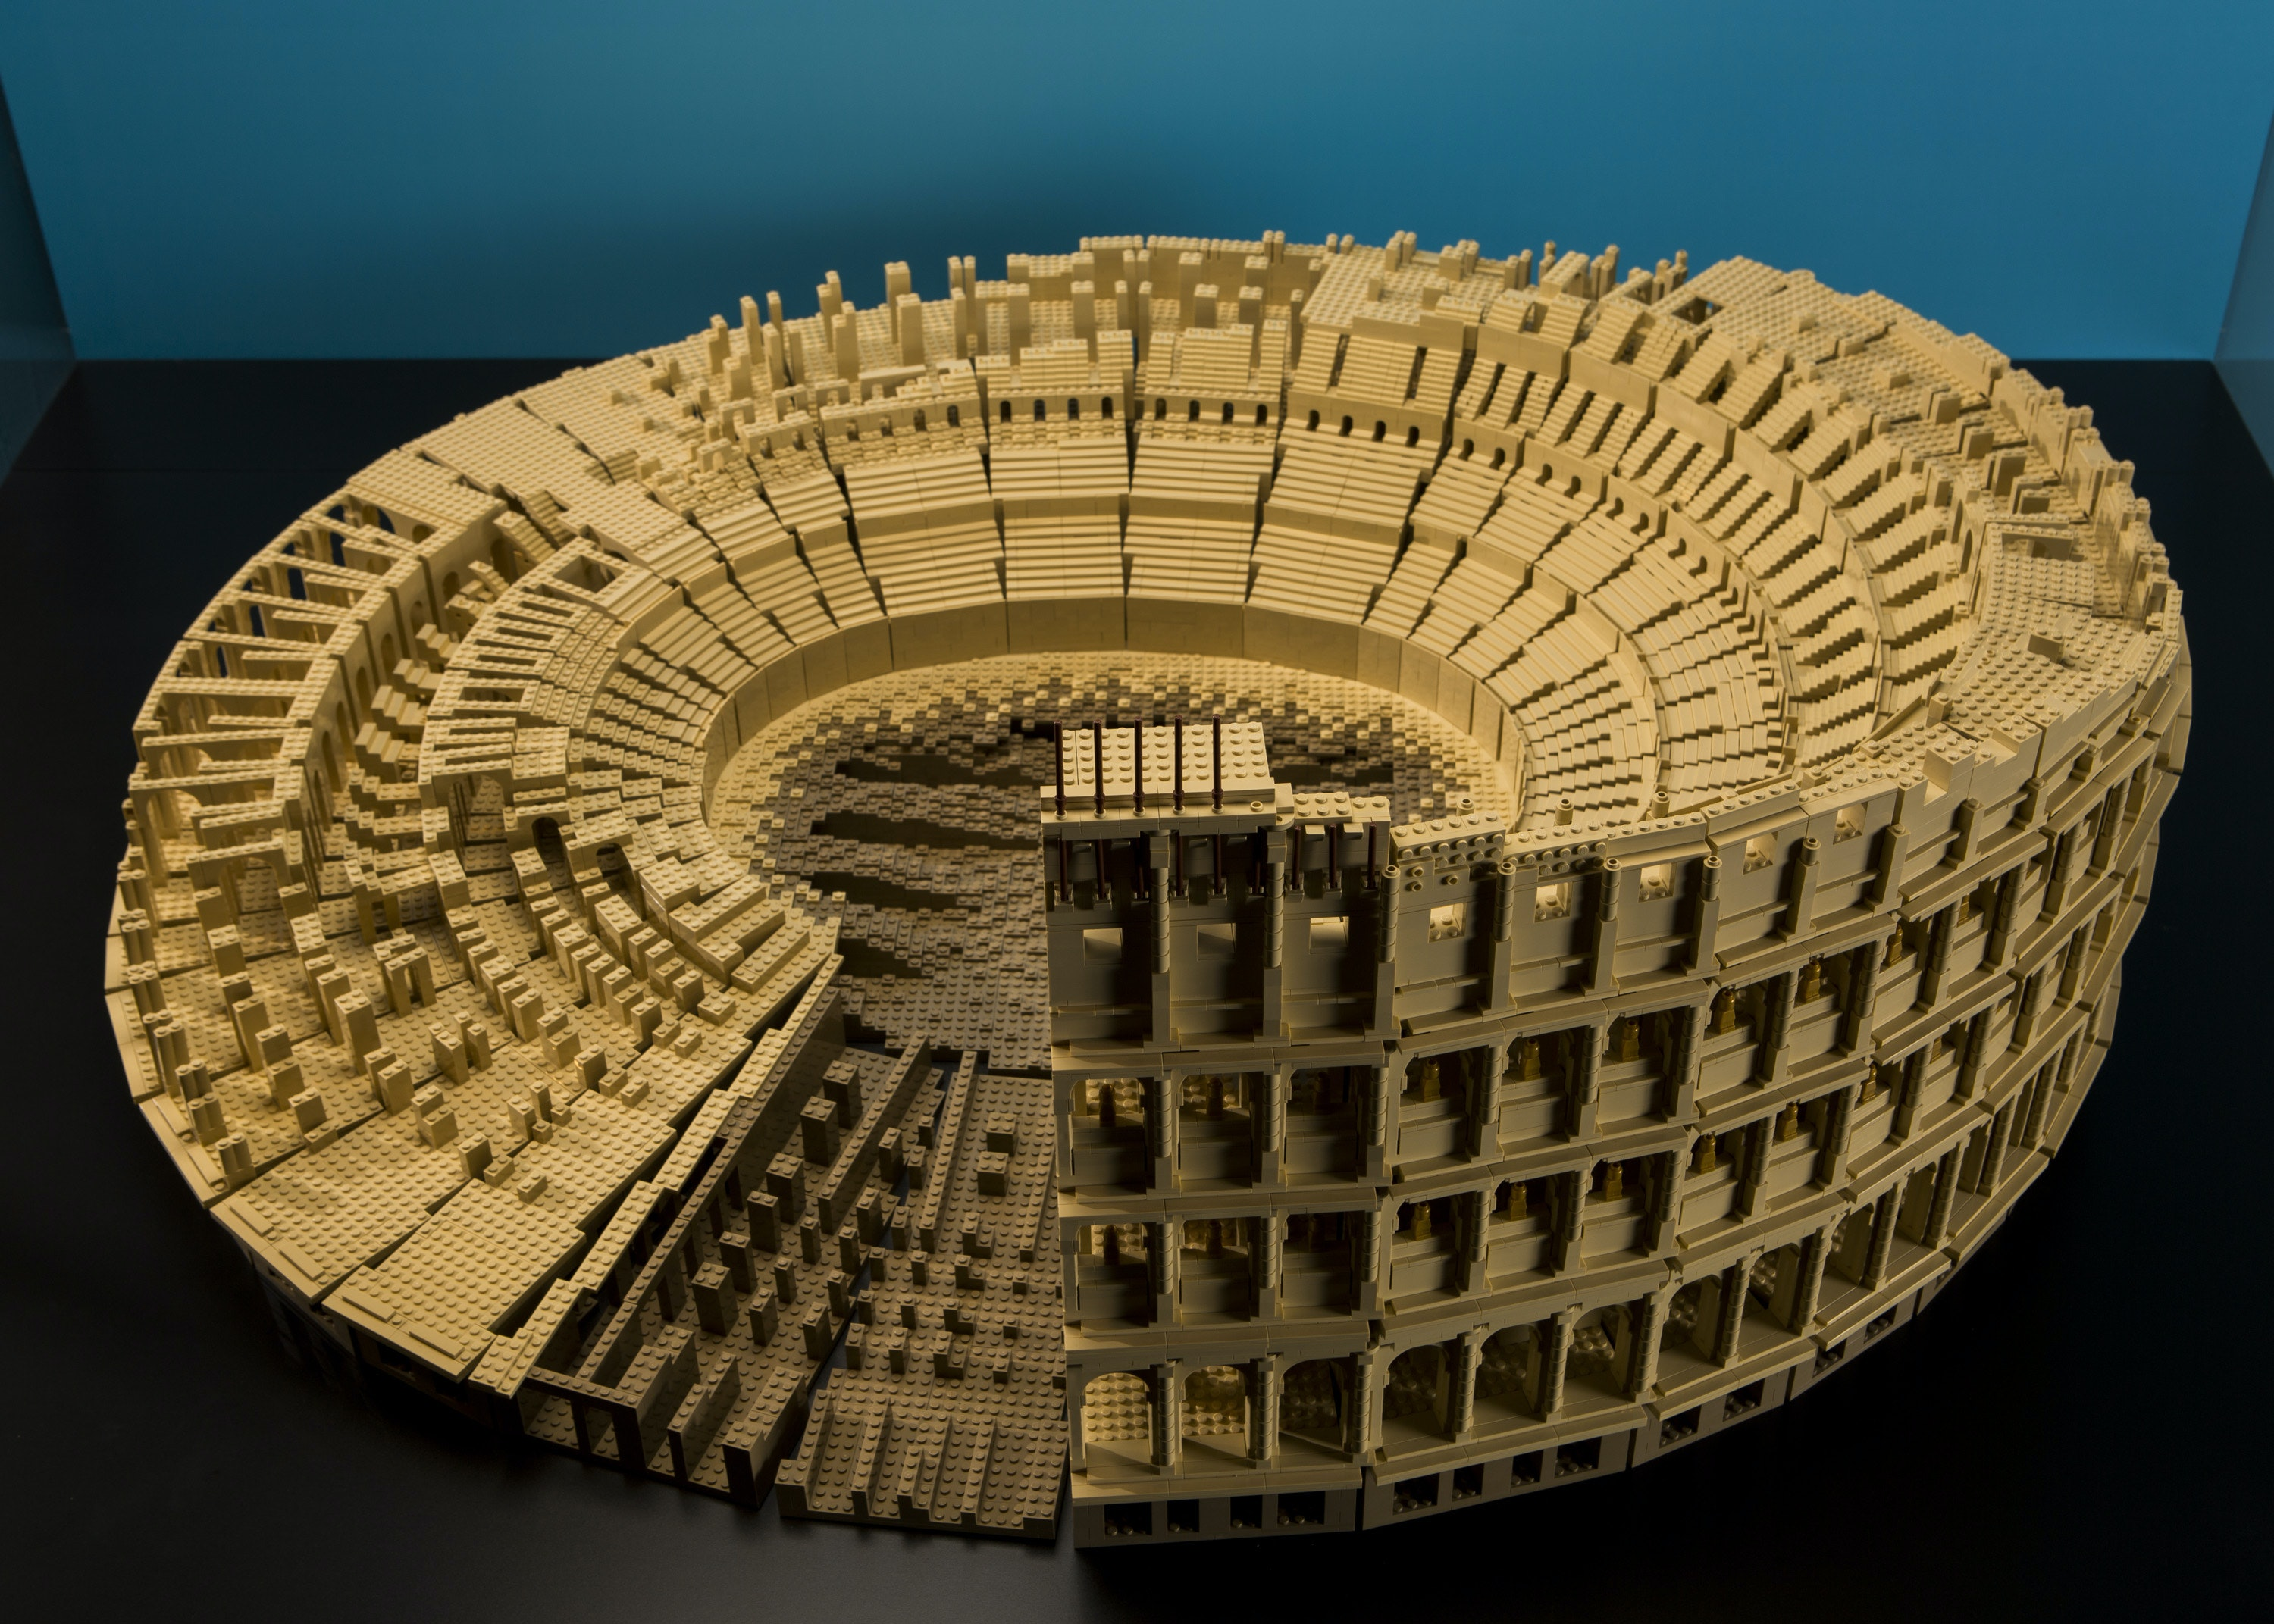 The Roman Colosseum at MSI's